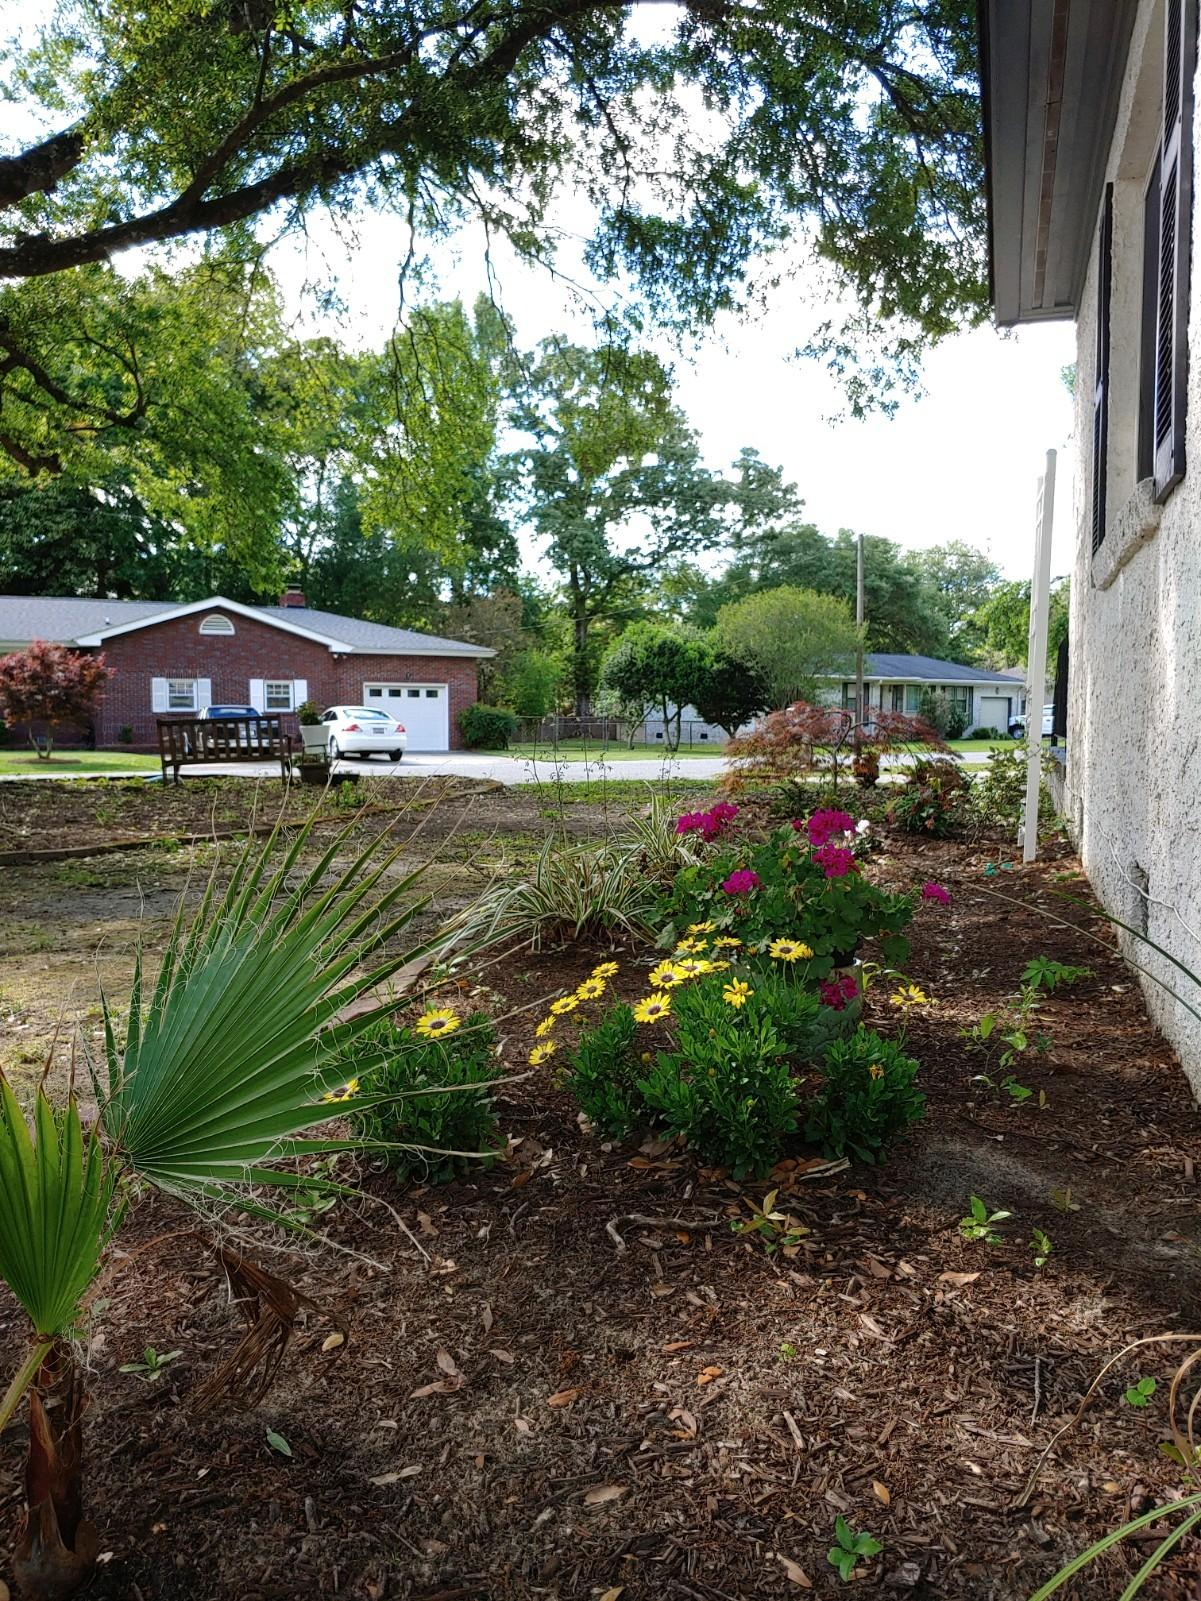 Old Towne Acres Homes For Sale - 1326 Bryjo, Charleston, SC - 19